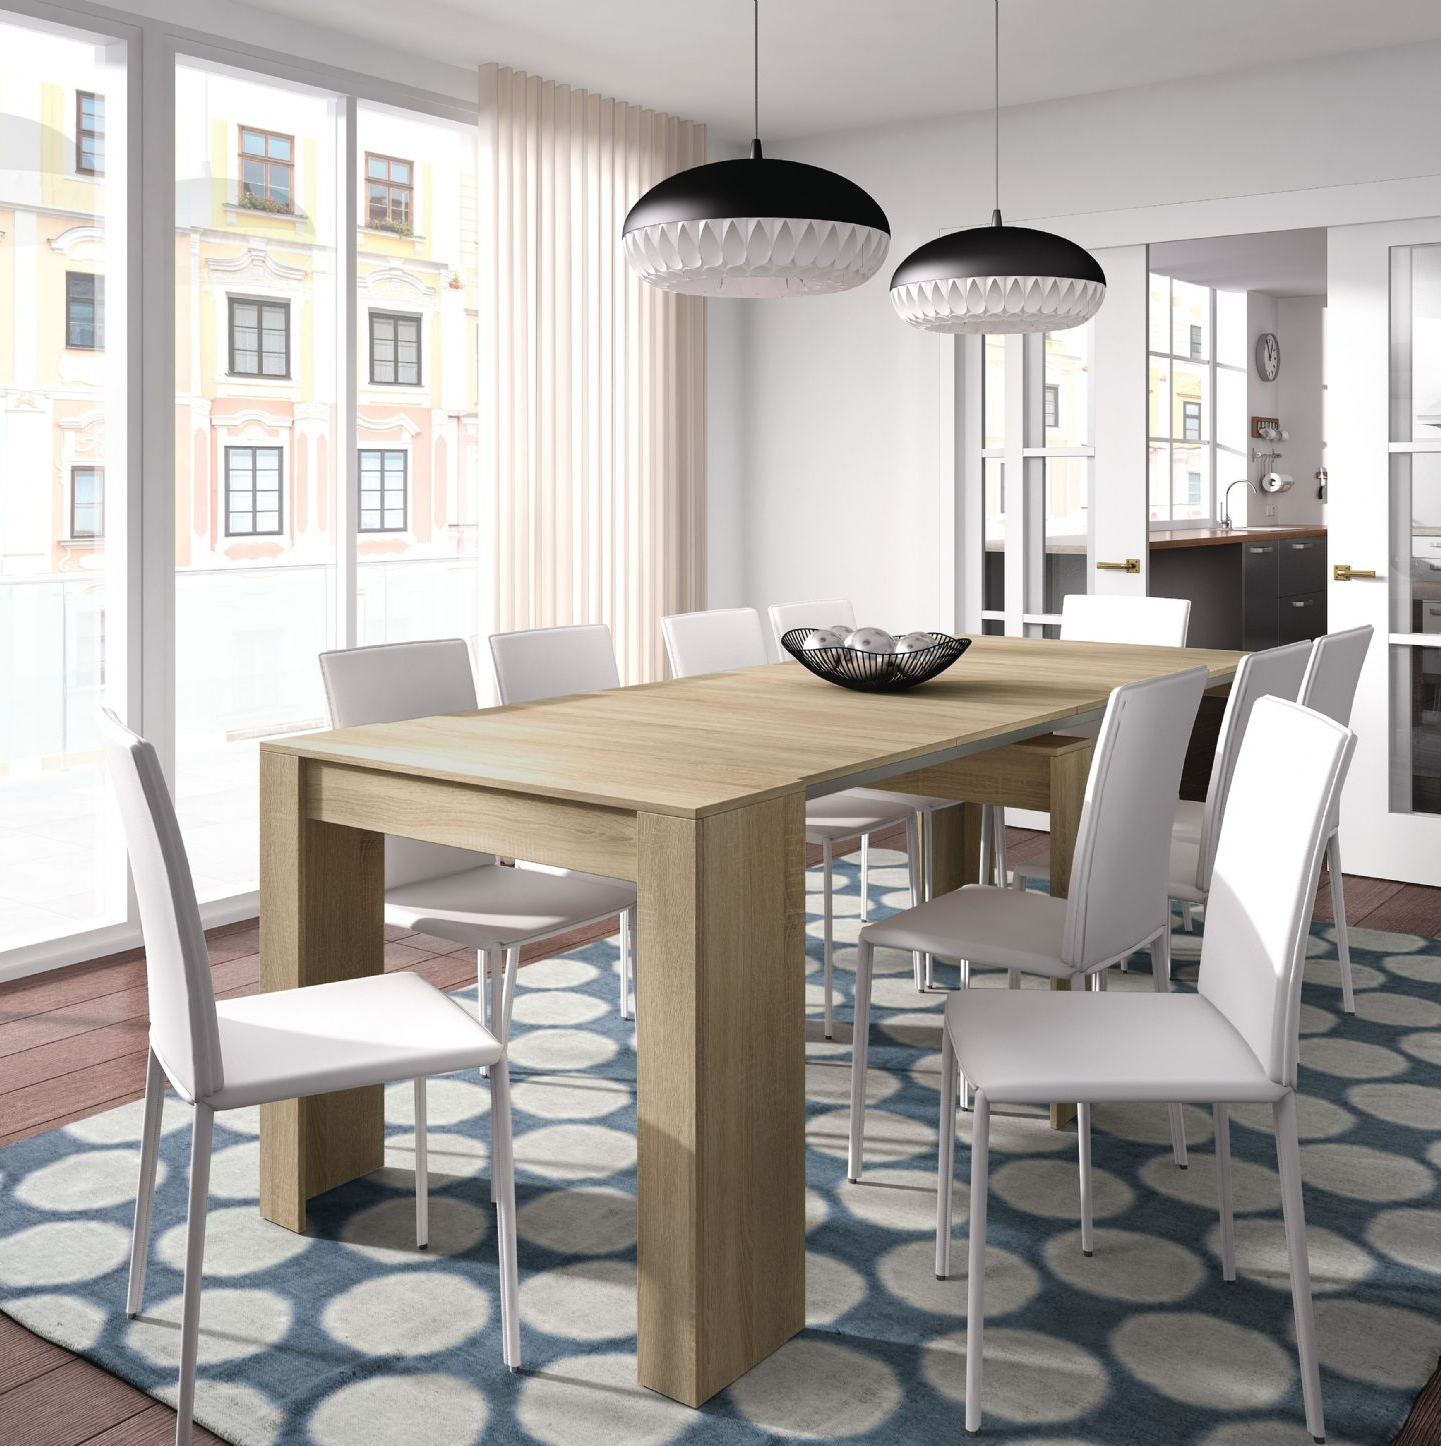 Nordic Grande 5 Position Oak Effect Extending Dining Table